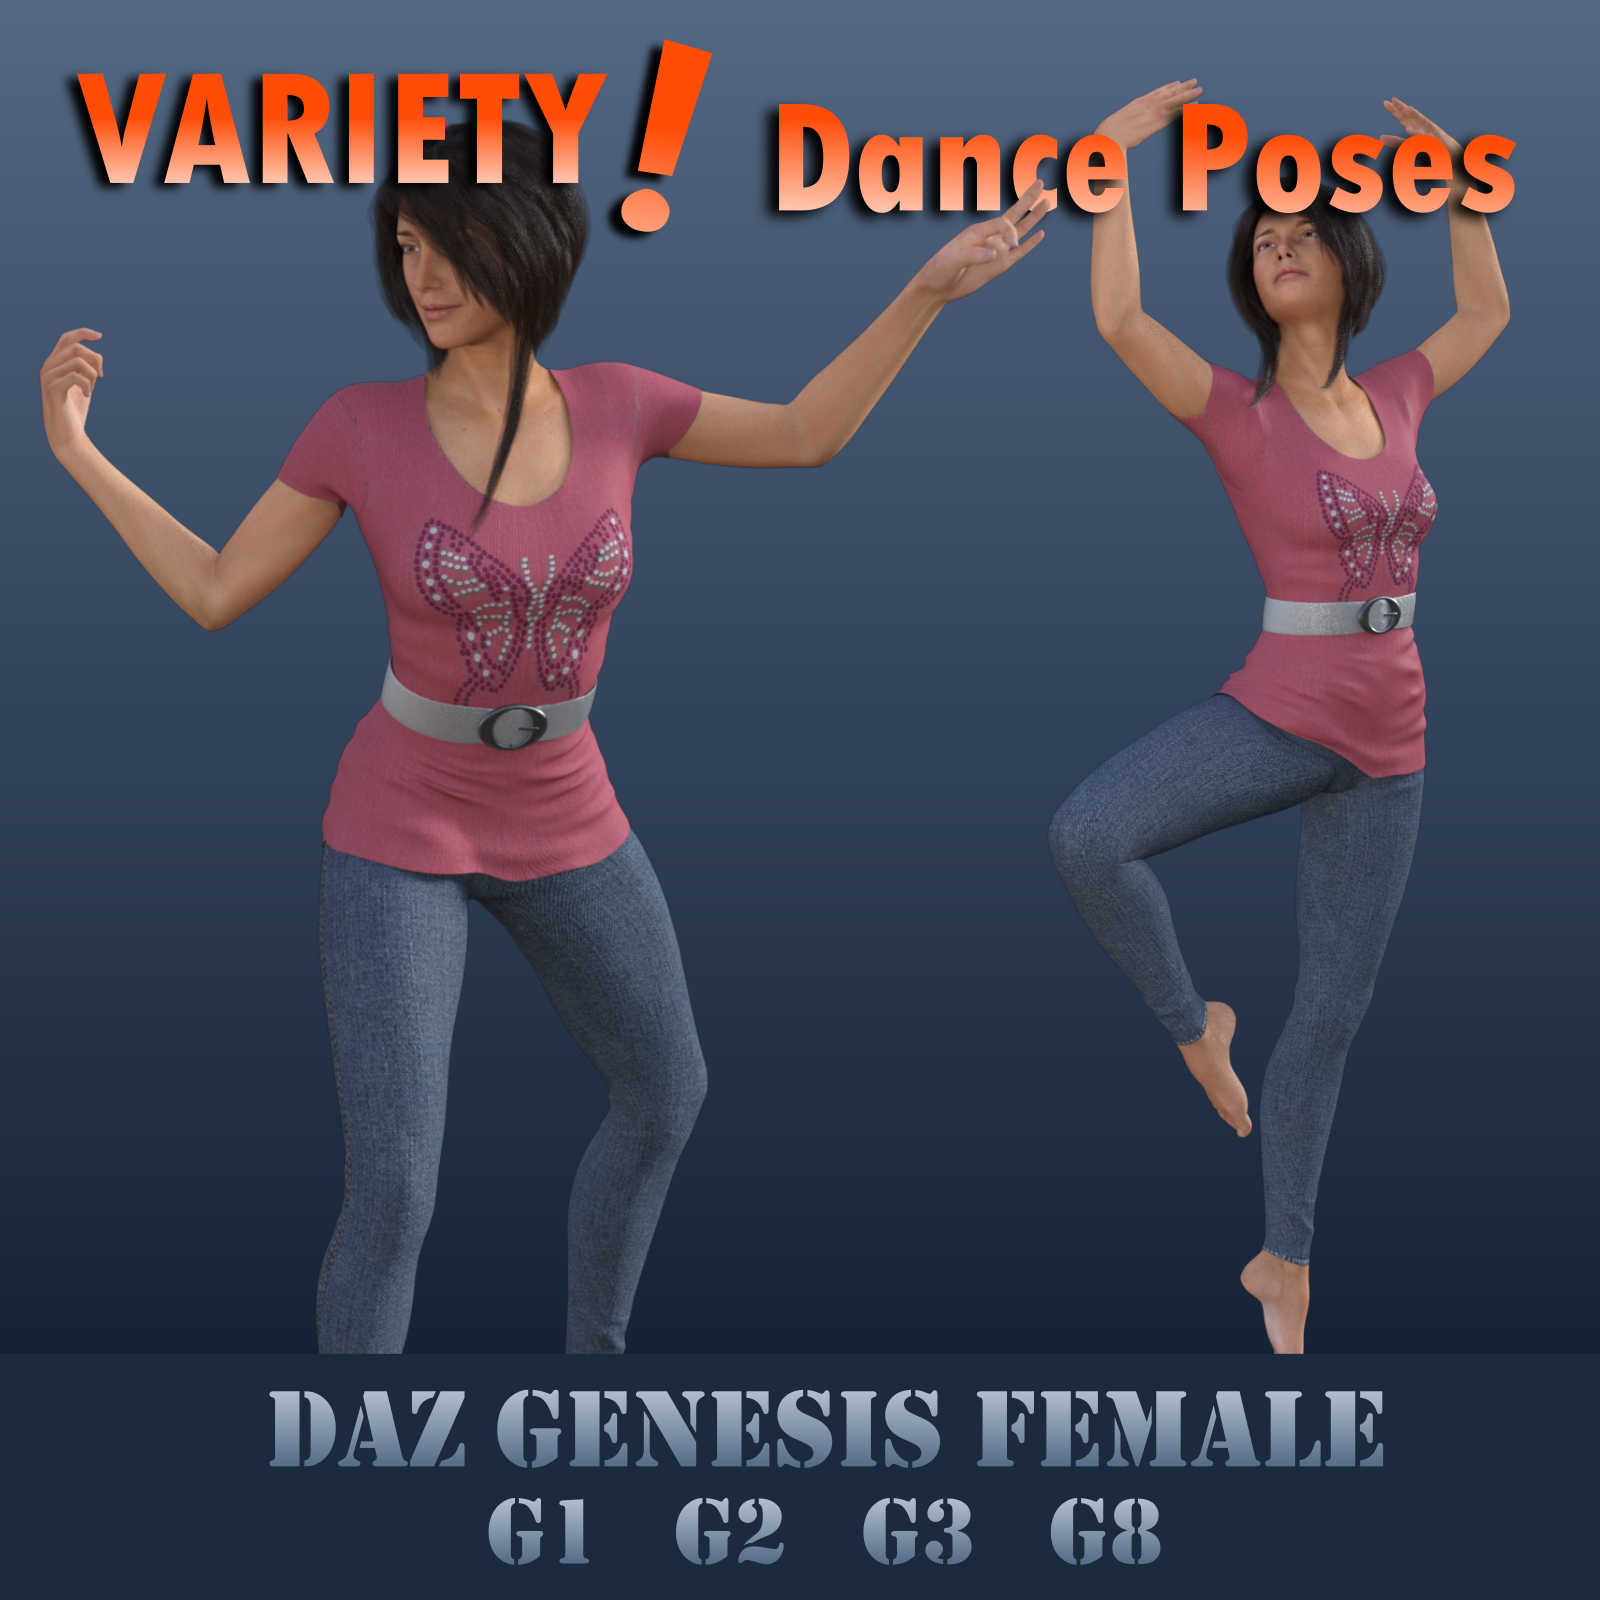 VARIETY! Dance Poses for Female Geez - G1F, G2F, G3F, G8F